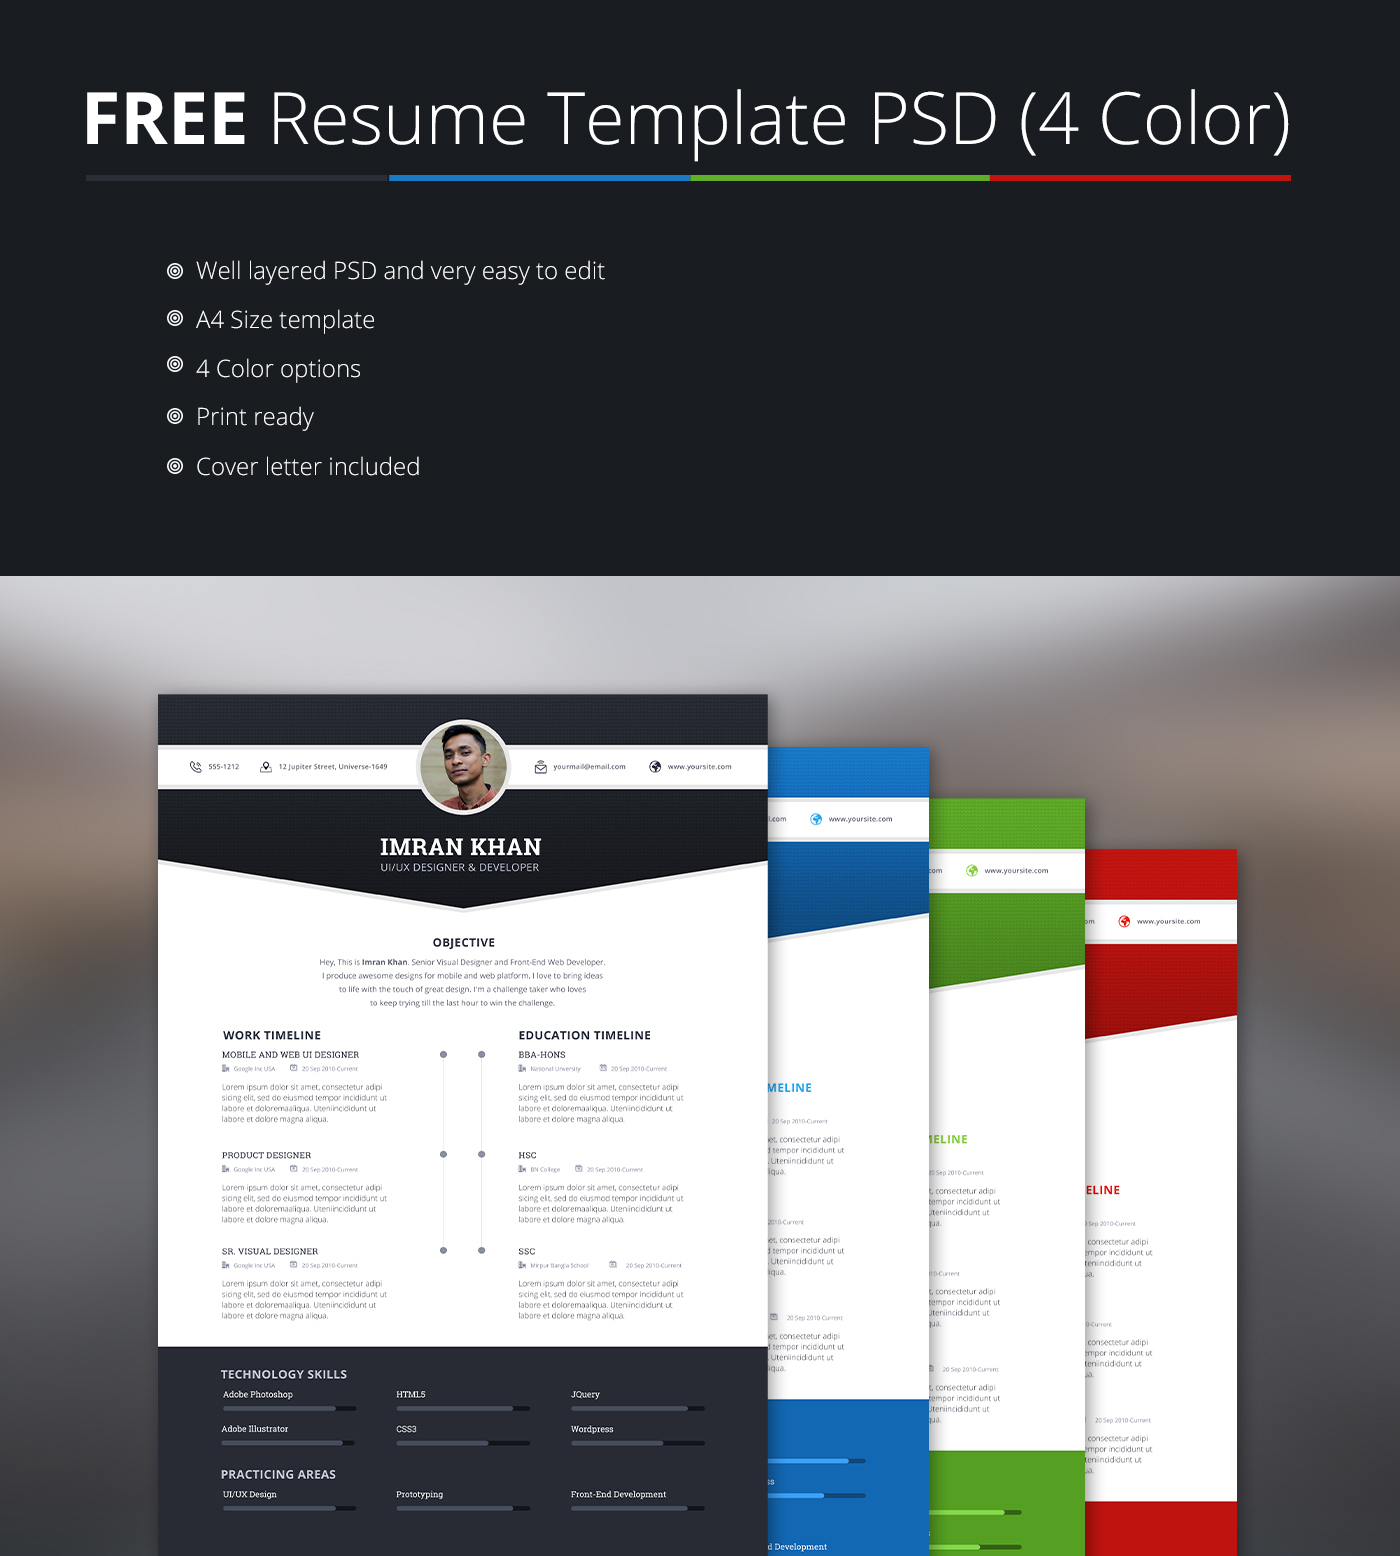 Resume Free Colorful Resume Templates free resume template psd 4 colors on behance